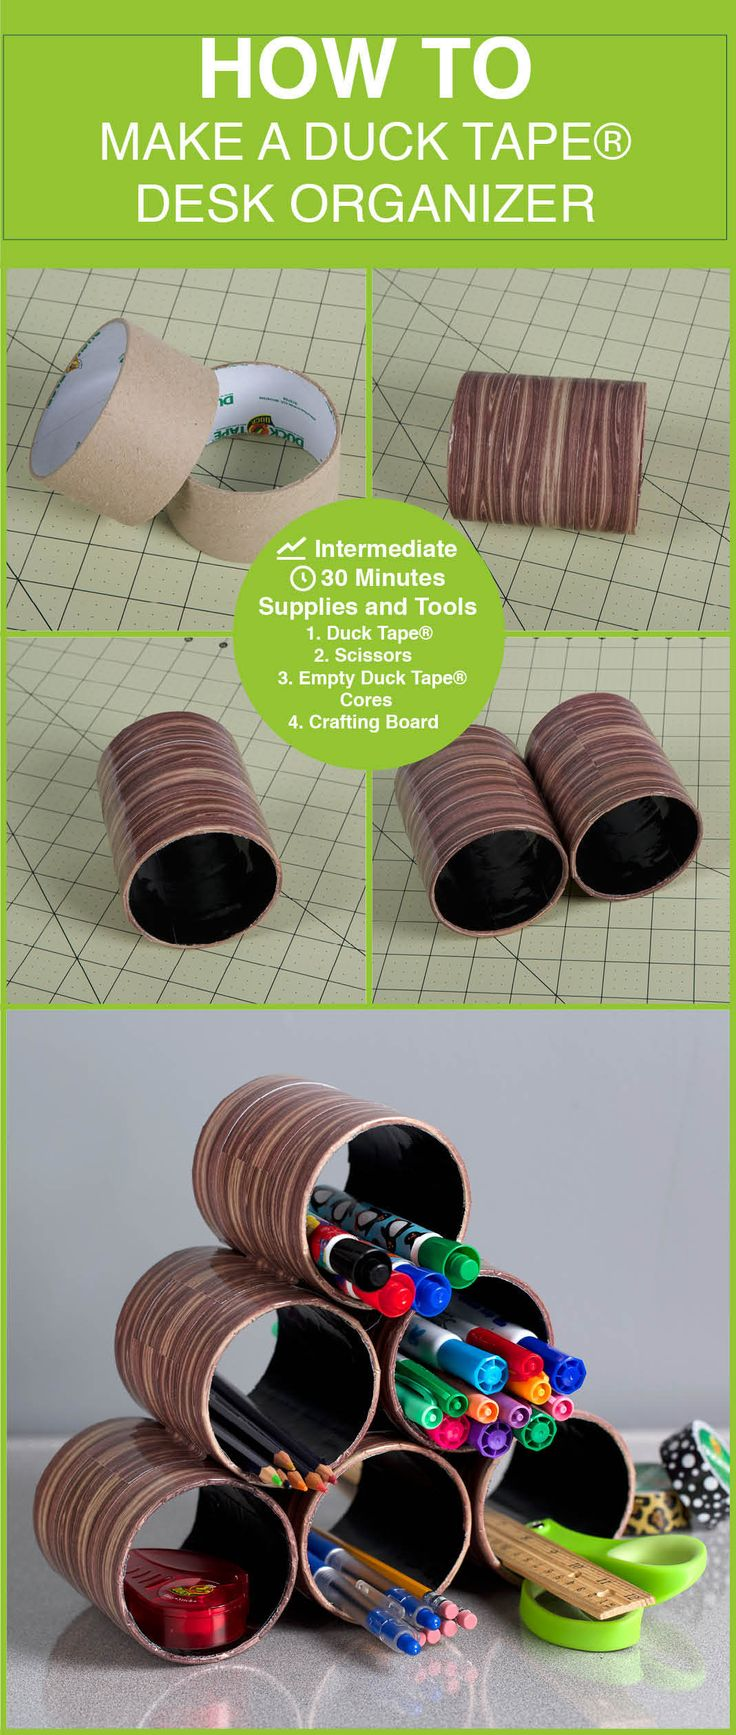 Reuse duct tape cores to make this desk organizer: